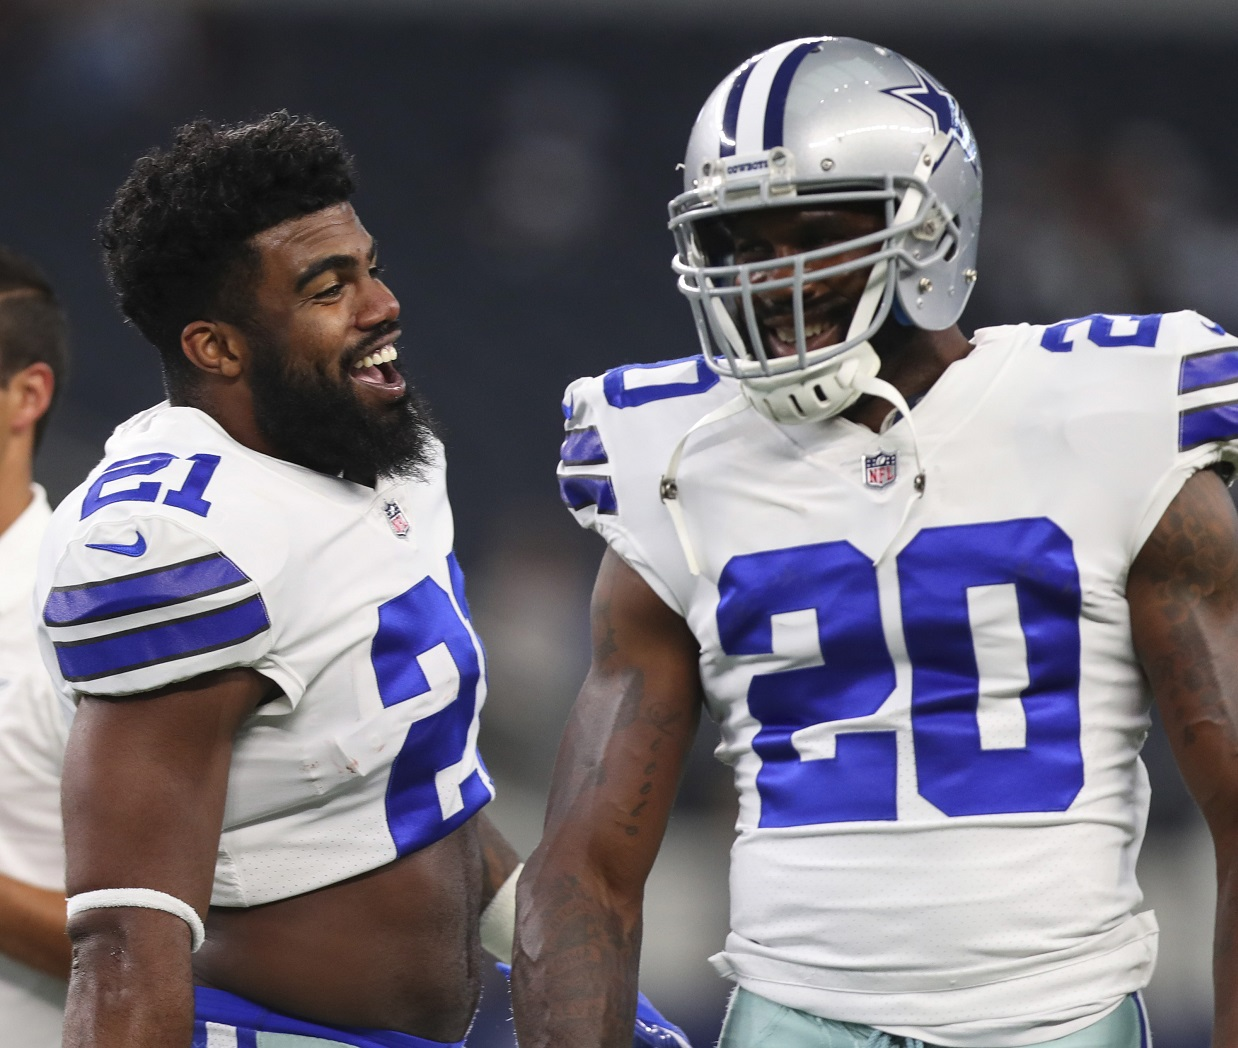 Ezekiel Elliott Eligible to Play Until Petition for Rehearing is Resolved